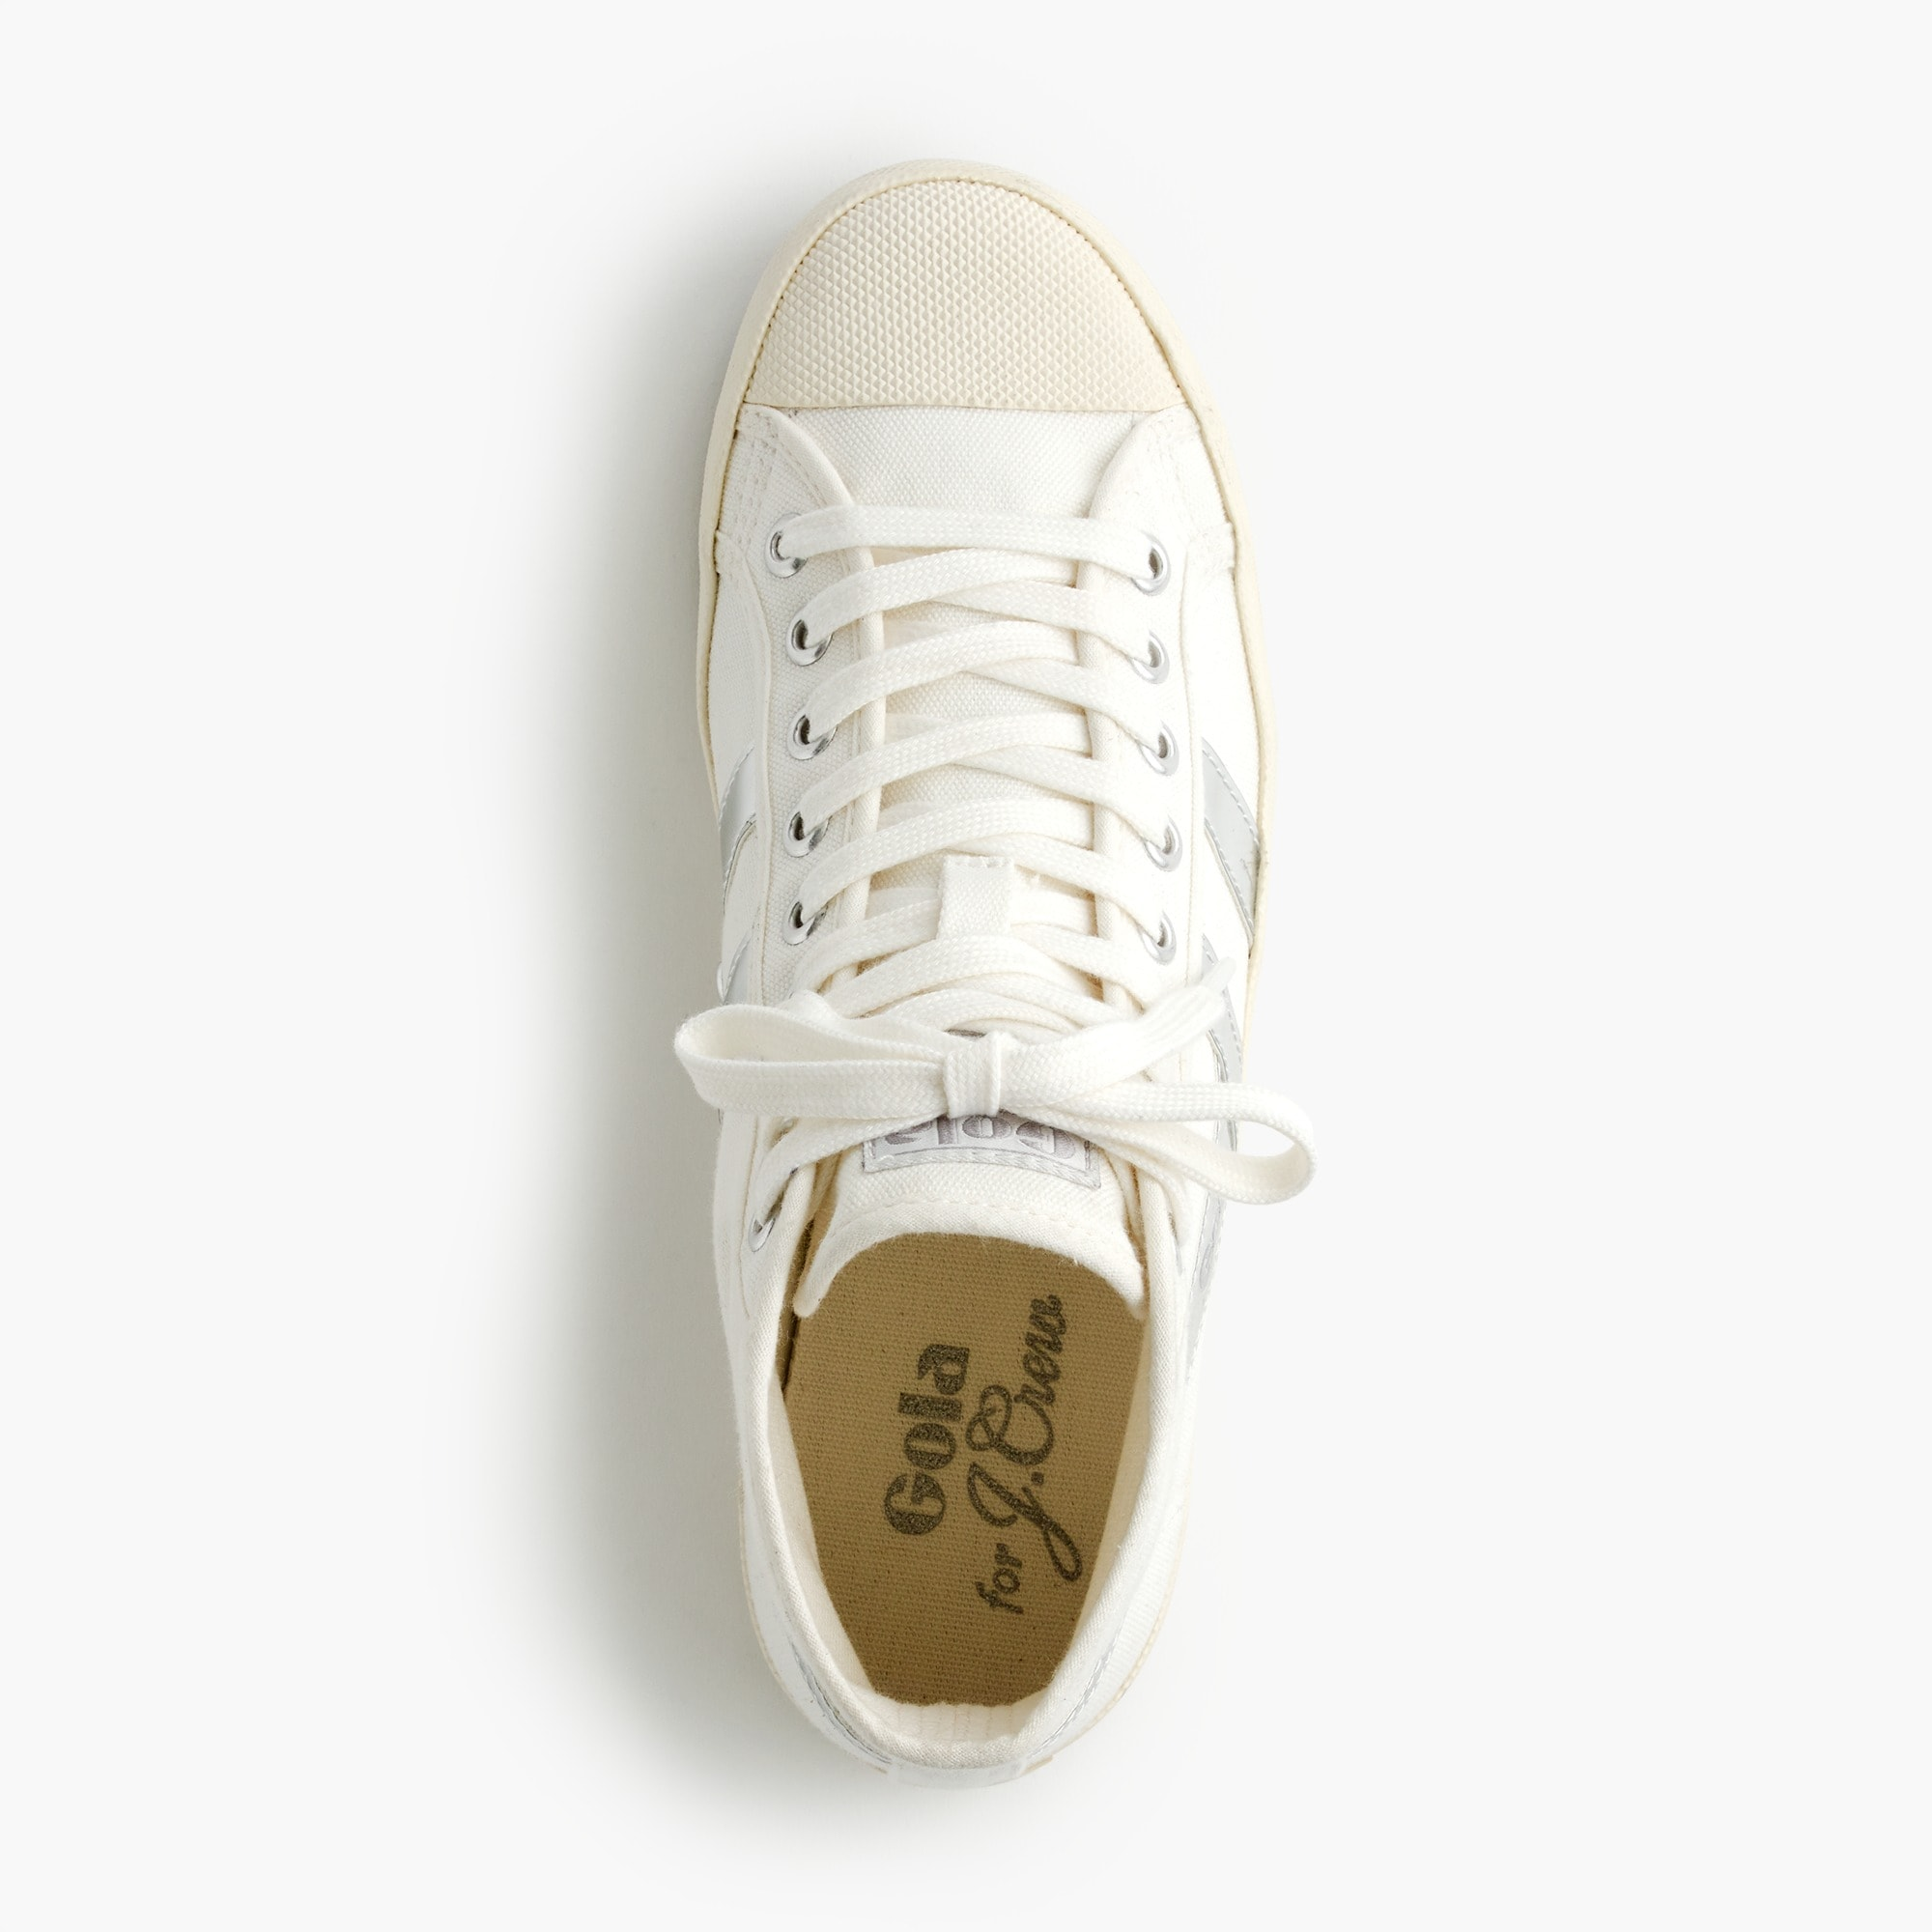 Image 2 for Gola® for J.Crew Coaster high-top sneaker